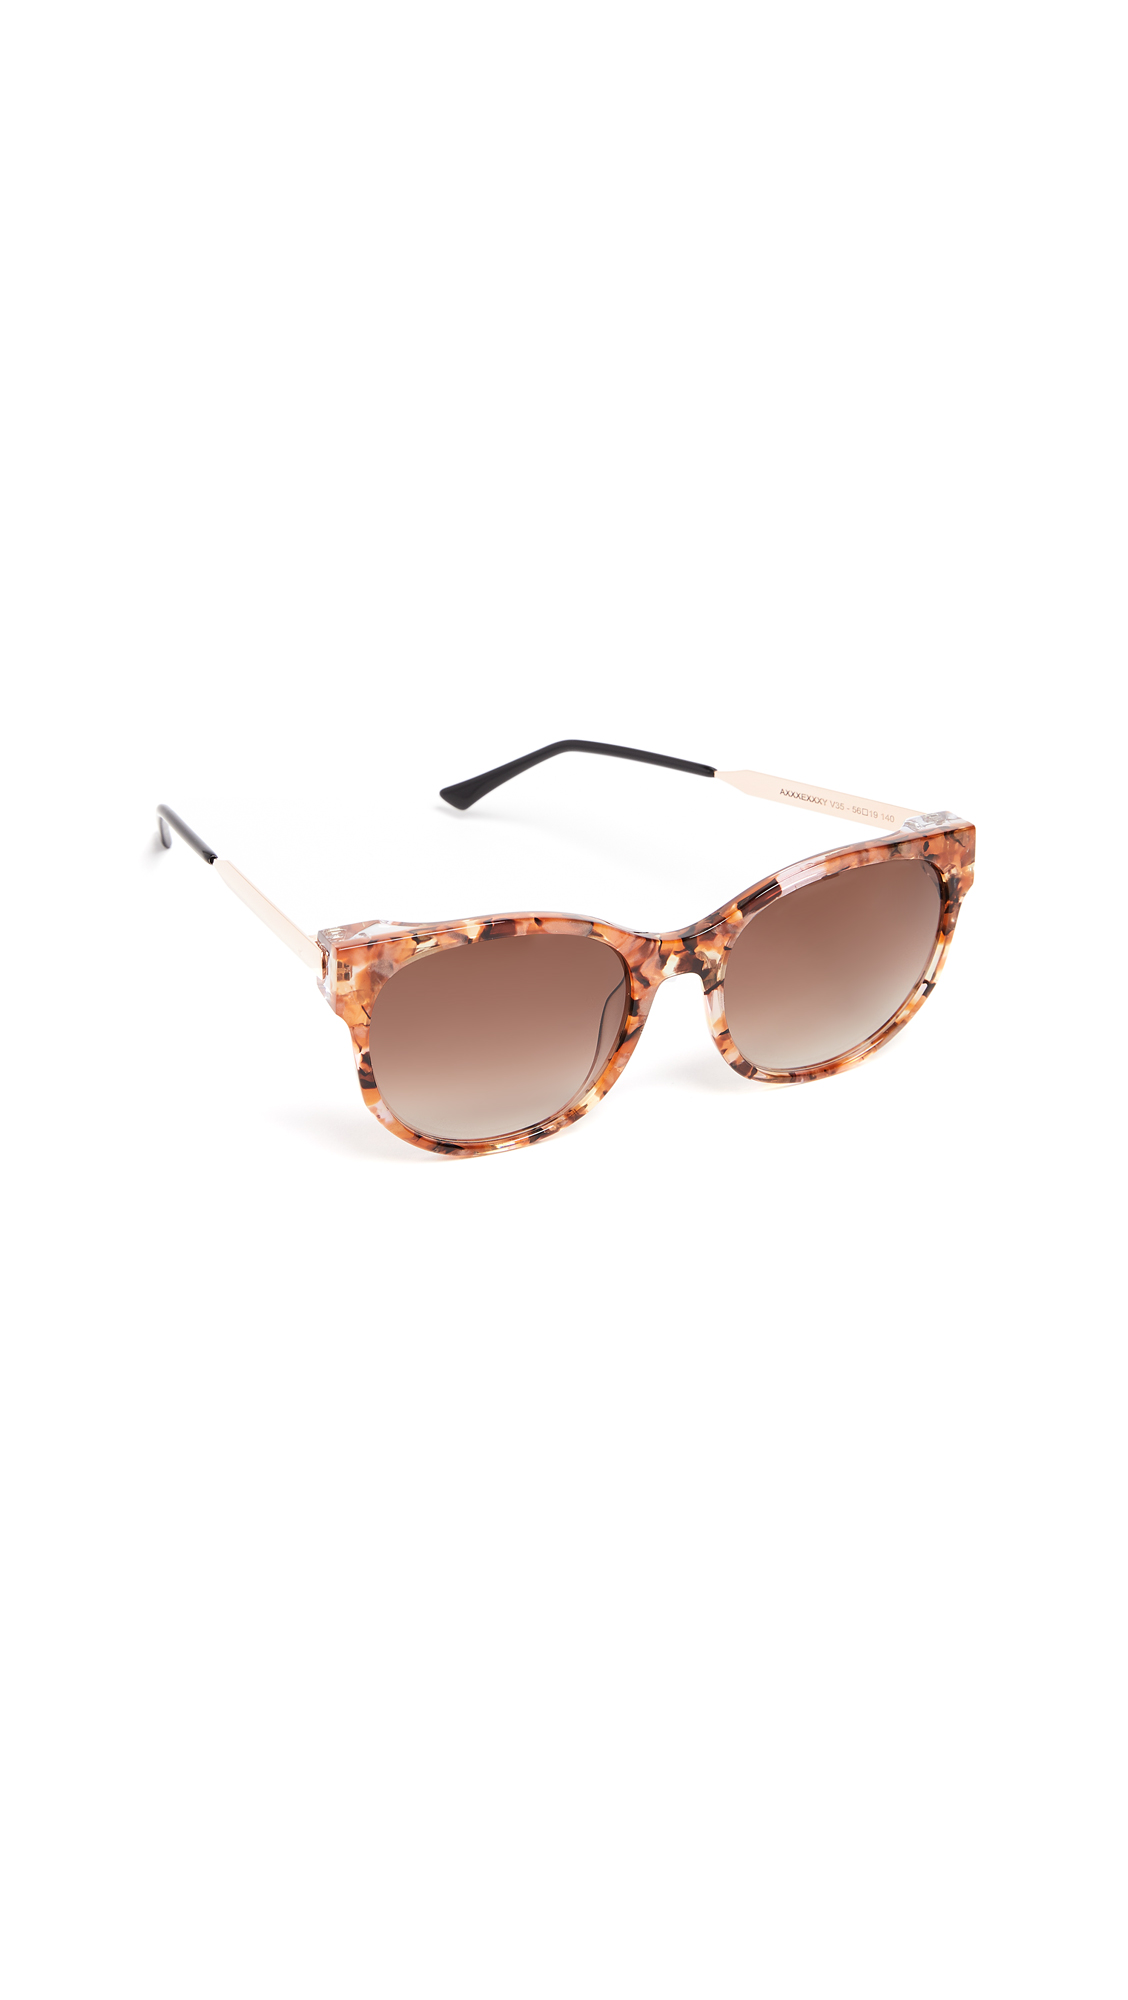 Thierry Lasry Axxxexxxy Sunglasses In Multi/Brown